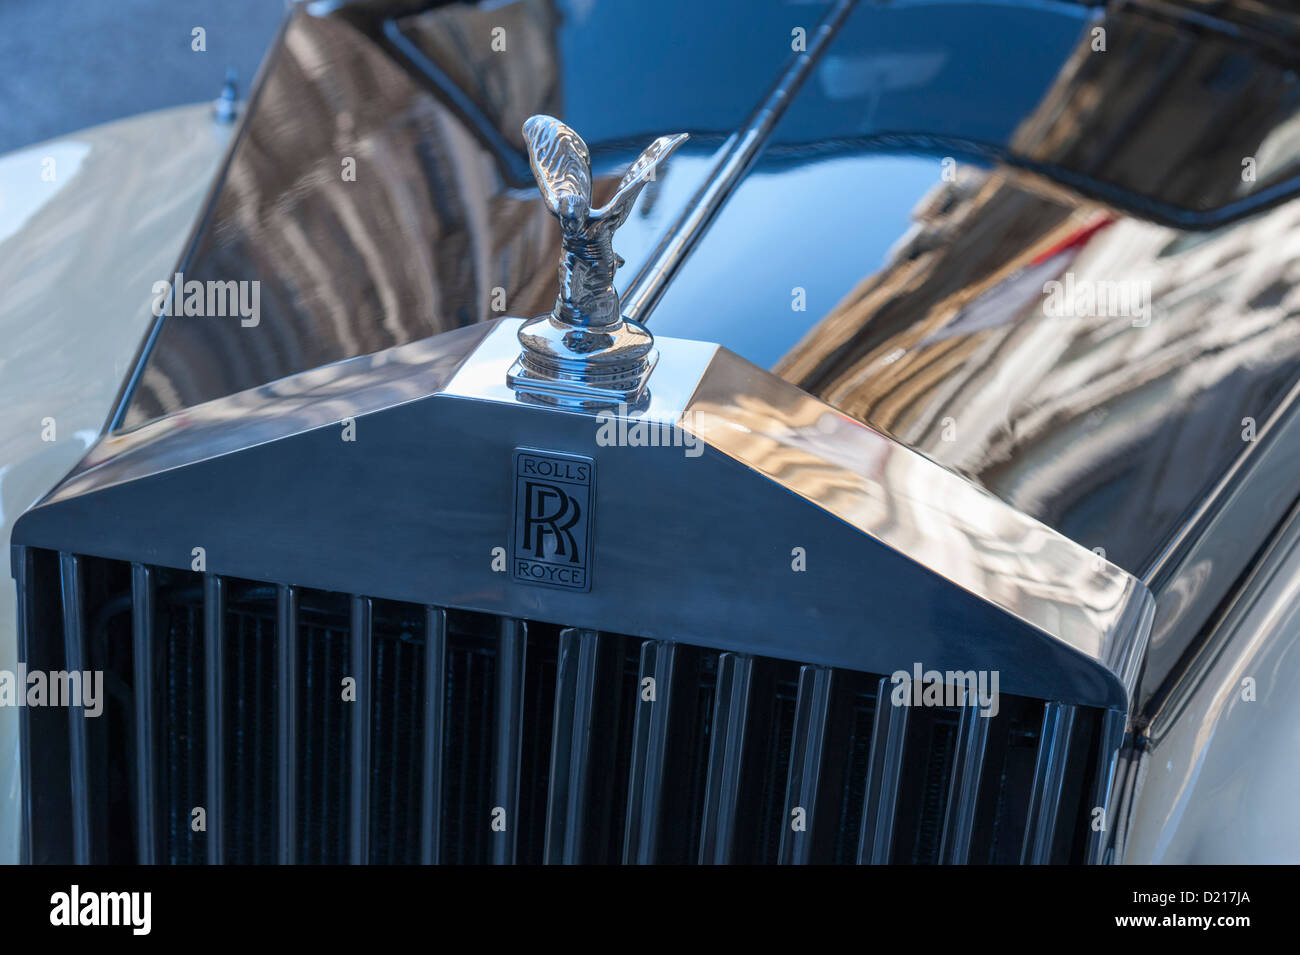 Design of a car radiator - Close Up Of An Old Rolls Royce Car Radiator And Flying Angel Badge